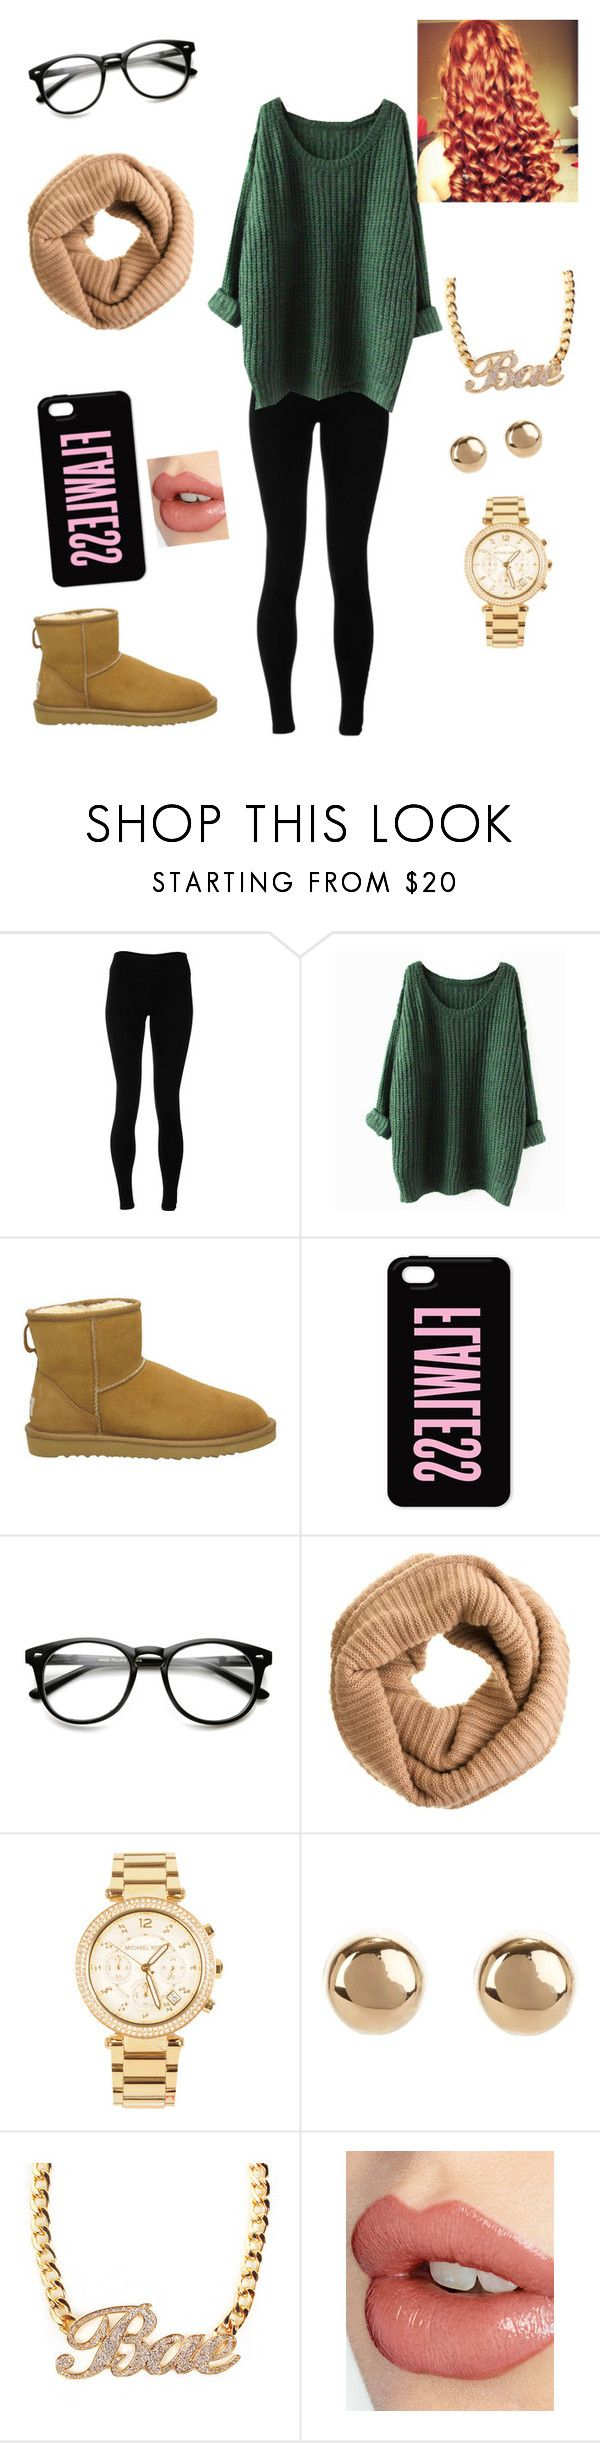 """chill"" by lil-baby-d ❤ liked on Polyvore featuring Solow, UGG Australia, J.Crew, Michael Kors, Jules Smith and Charlotte Tilbury"